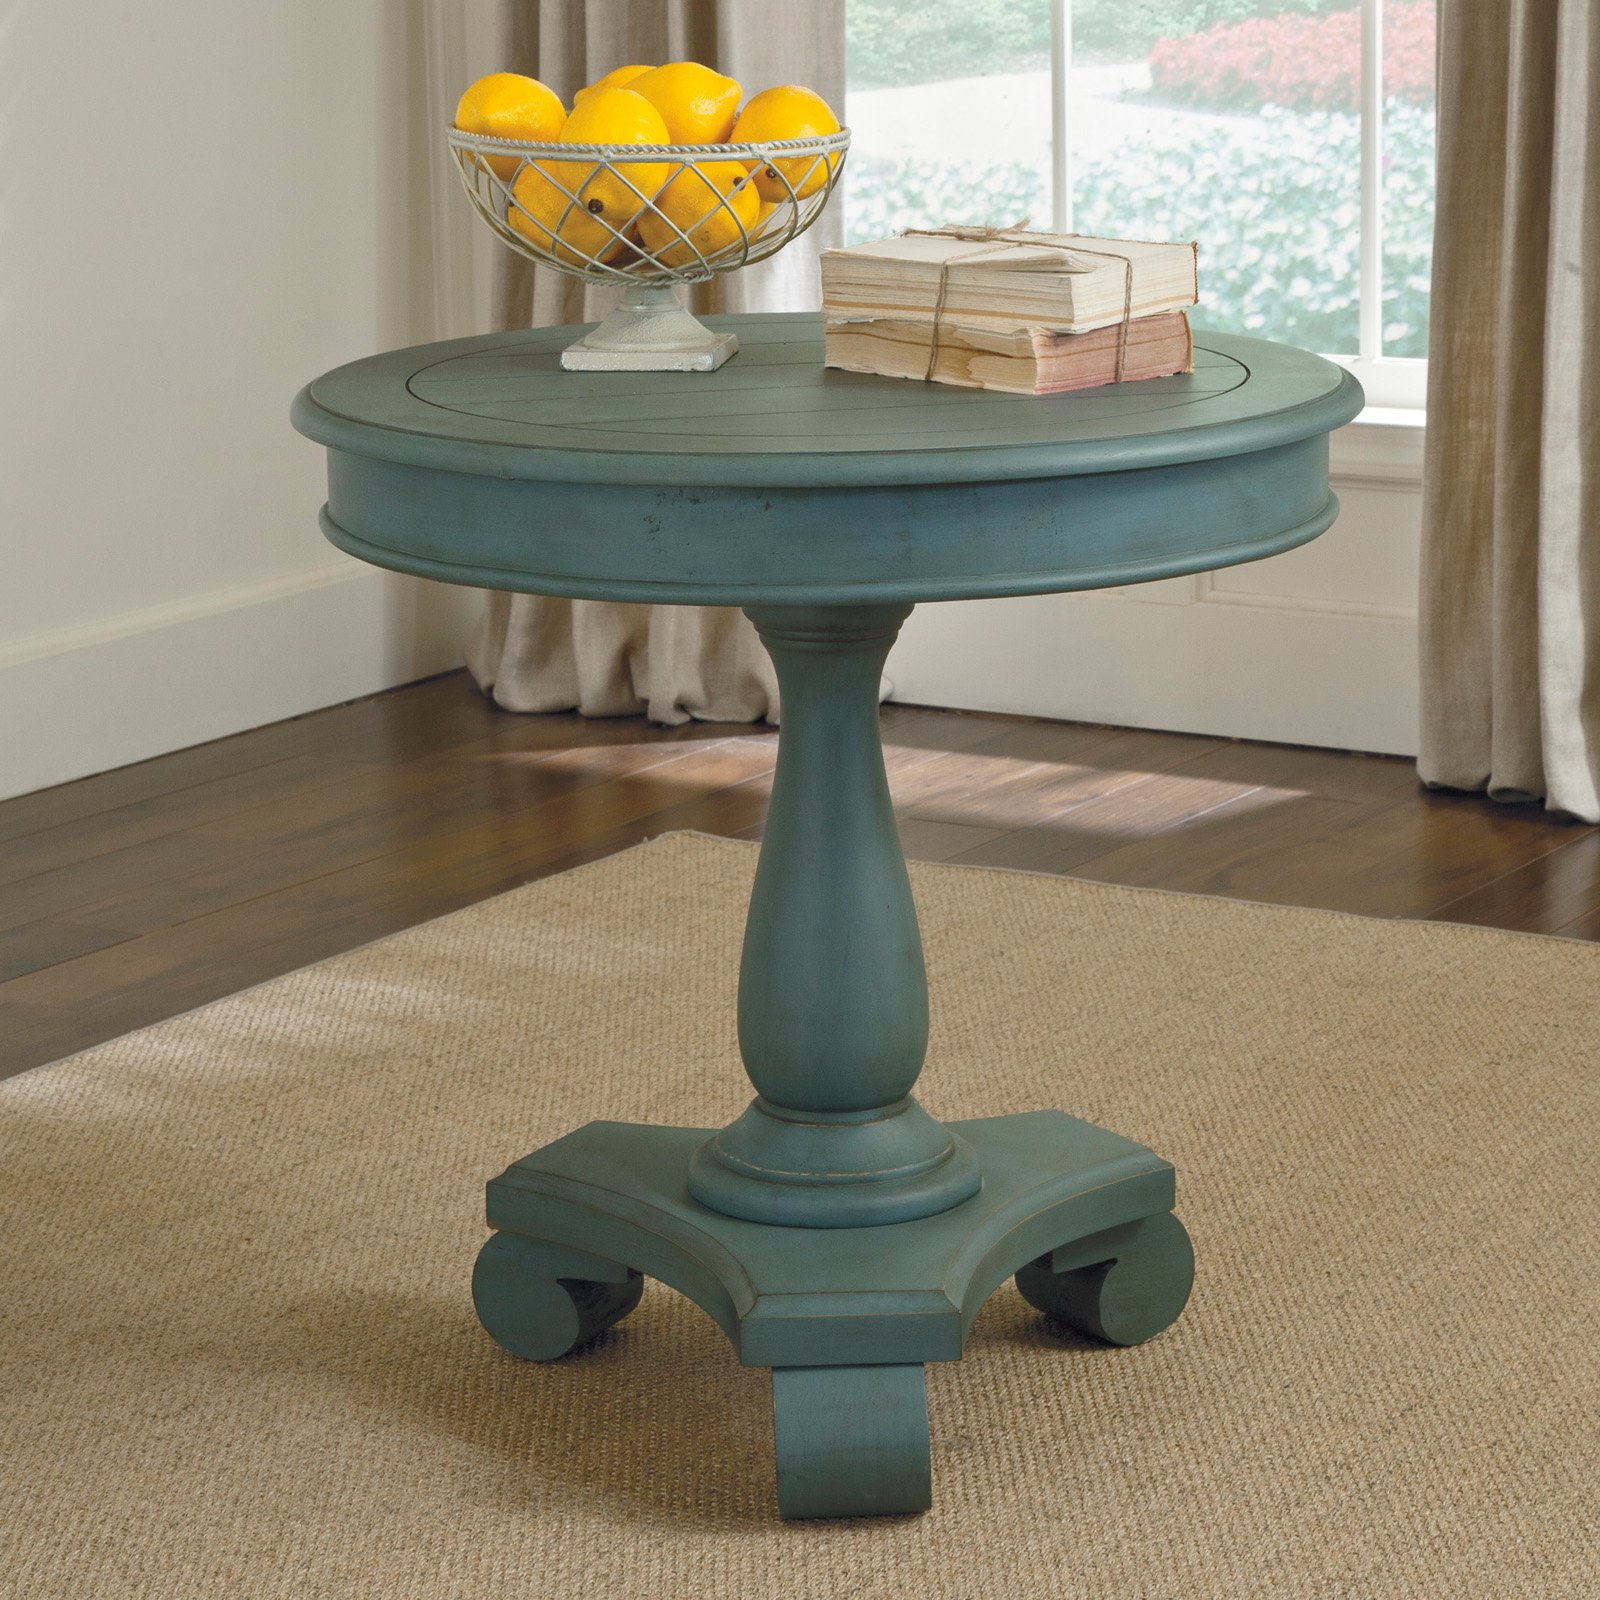 Signature Design By Ashley Cottage Accents Blue Round Accent Table    Walmart.com